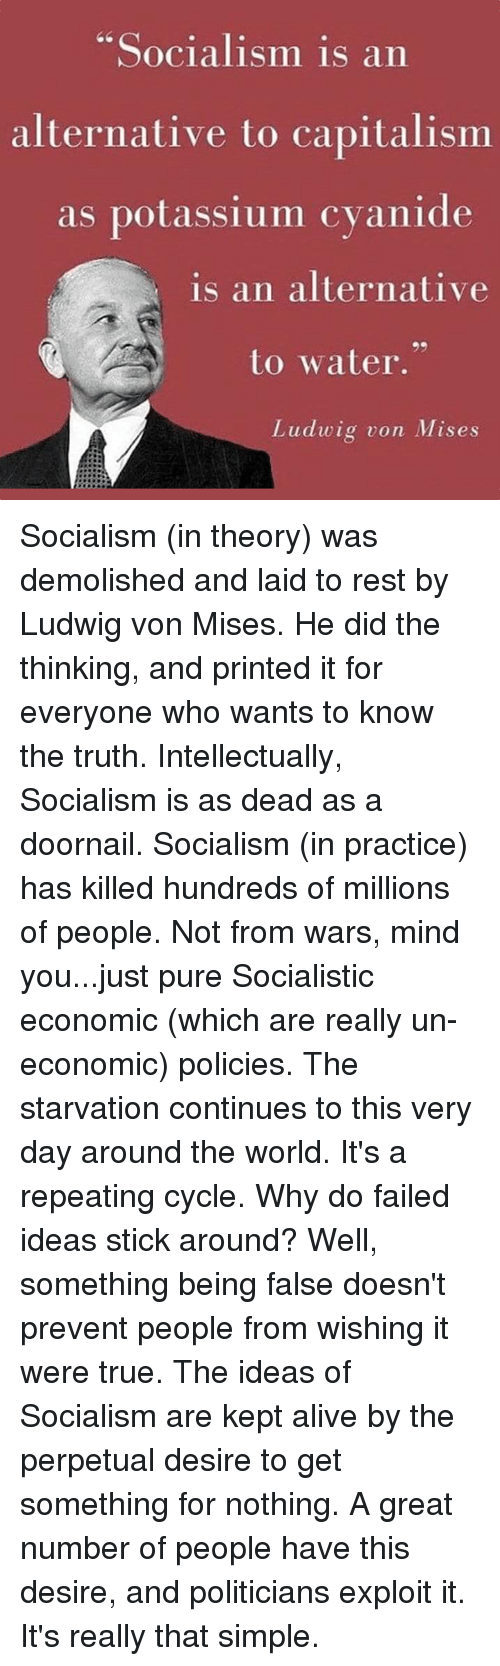 """Alive, Dank, and True: Socialism is an  alternative to capitalismm  as potassium cvanide  is an alternative  to water.""""  Ludwig von Mises Socialism (in theory) was demolished and laid to rest by Ludwig von Mises. He did the thinking, and printed it for everyone who wants to know the truth.  Intellectually, Socialism is as dead as a doornail.  Socialism (in practice) has killed hundreds of millions of people. Not from wars, mind you...just pure Socialistic economic (which are really un-economic) policies.  The starvation continues to this very day around the world. It's a repeating cycle.  Why do failed ideas stick around?  Well, something being false doesn't prevent people from wishing it were true.  The ideas of Socialism are kept alive by the perpetual desire to get something for nothing.   A great number of people have this desire, and politicians exploit it.  It's really that simple."""